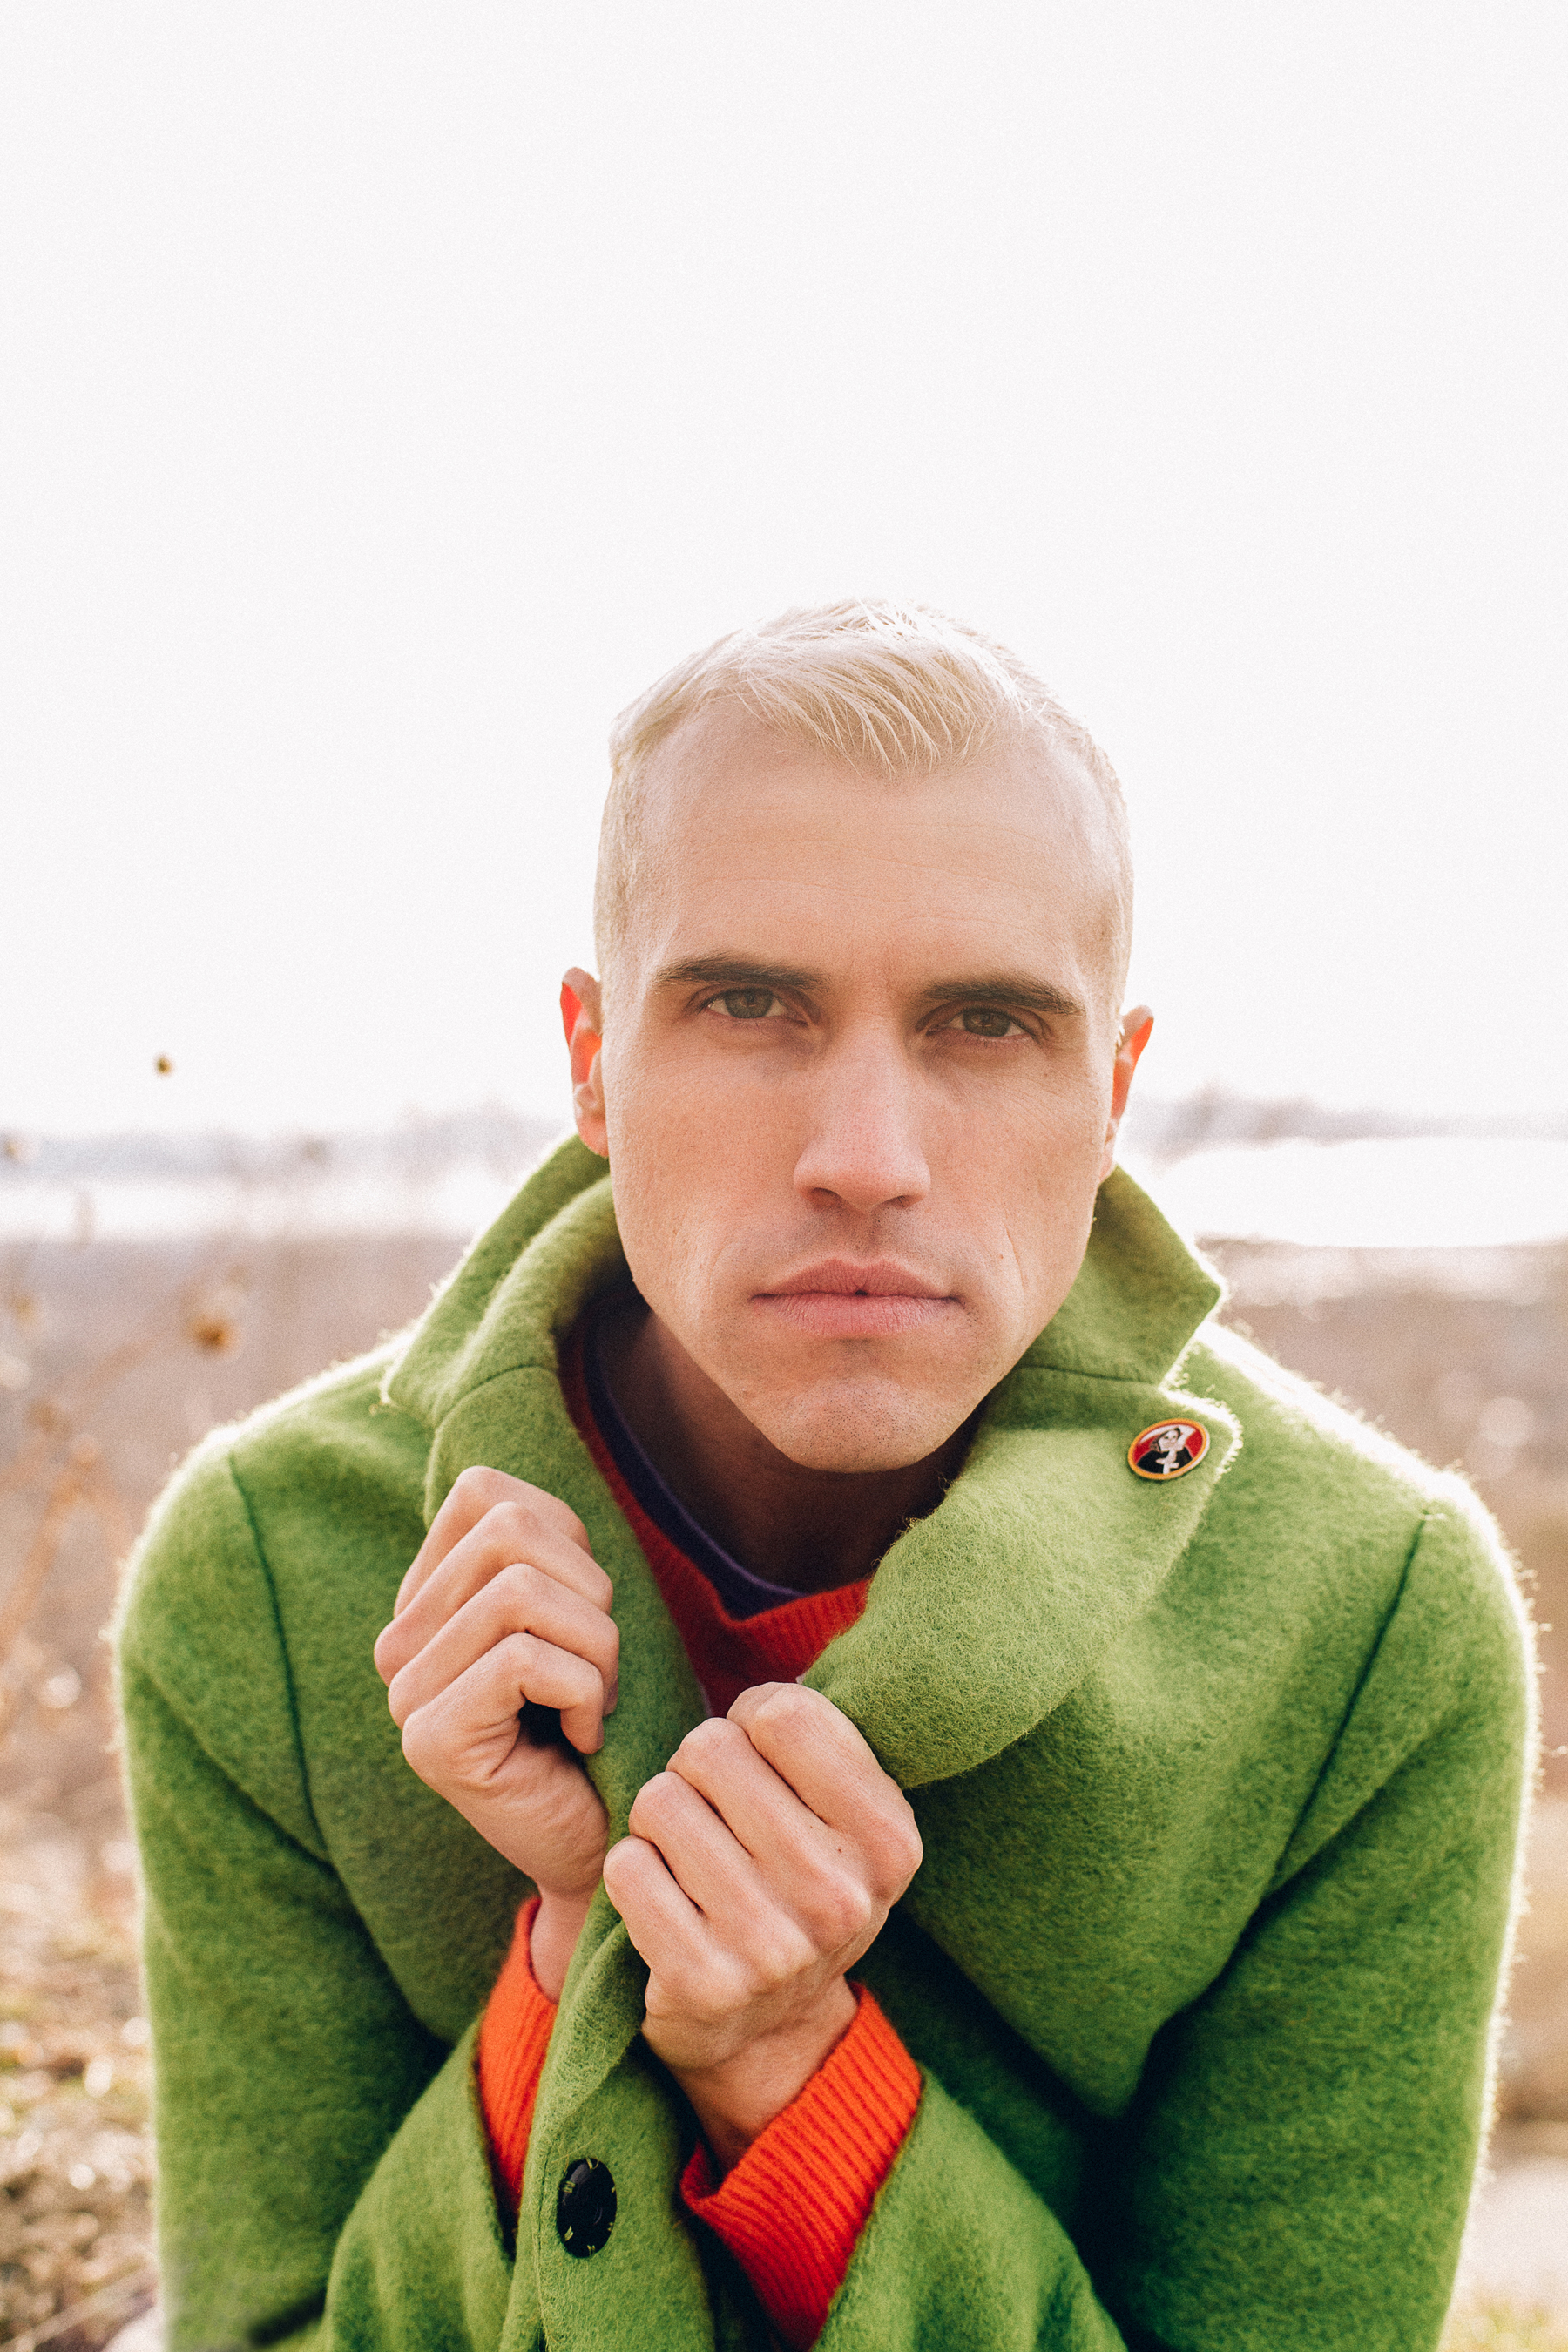 Neon Trees' Tyler Glenn: Gay, Mormon and Finally Out